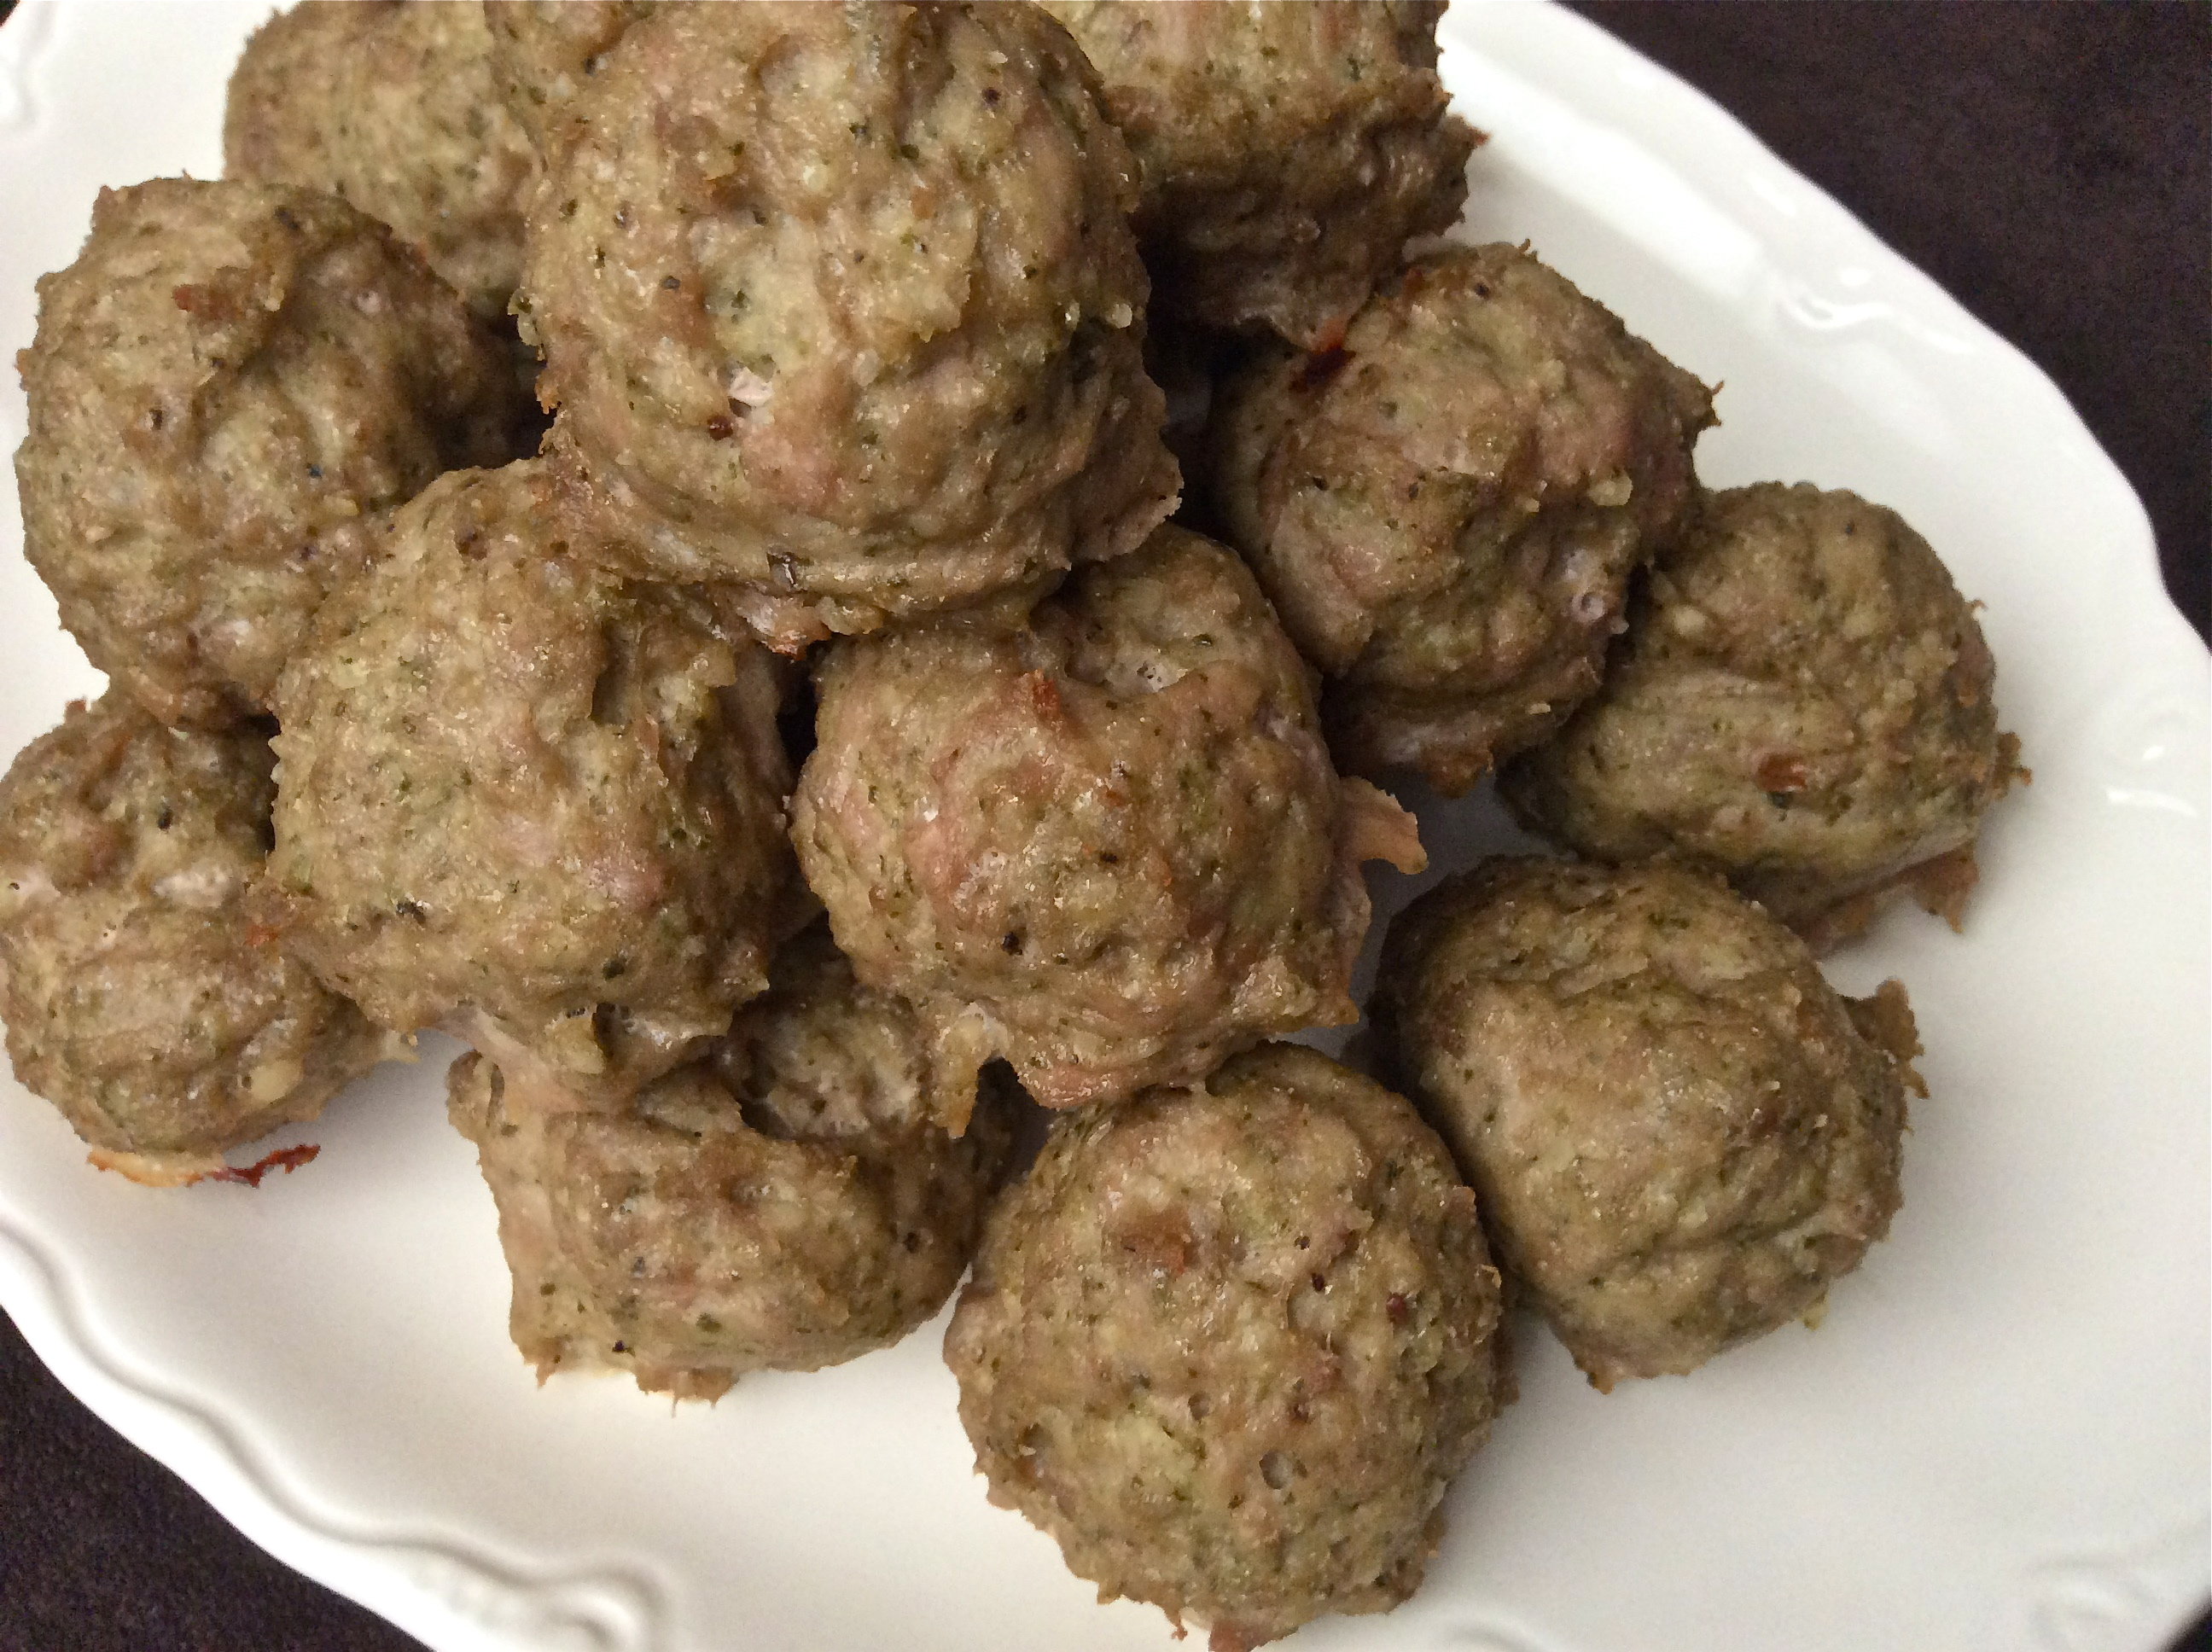 Turkey and Pesto Meatballs - Gluten and Dairy Free